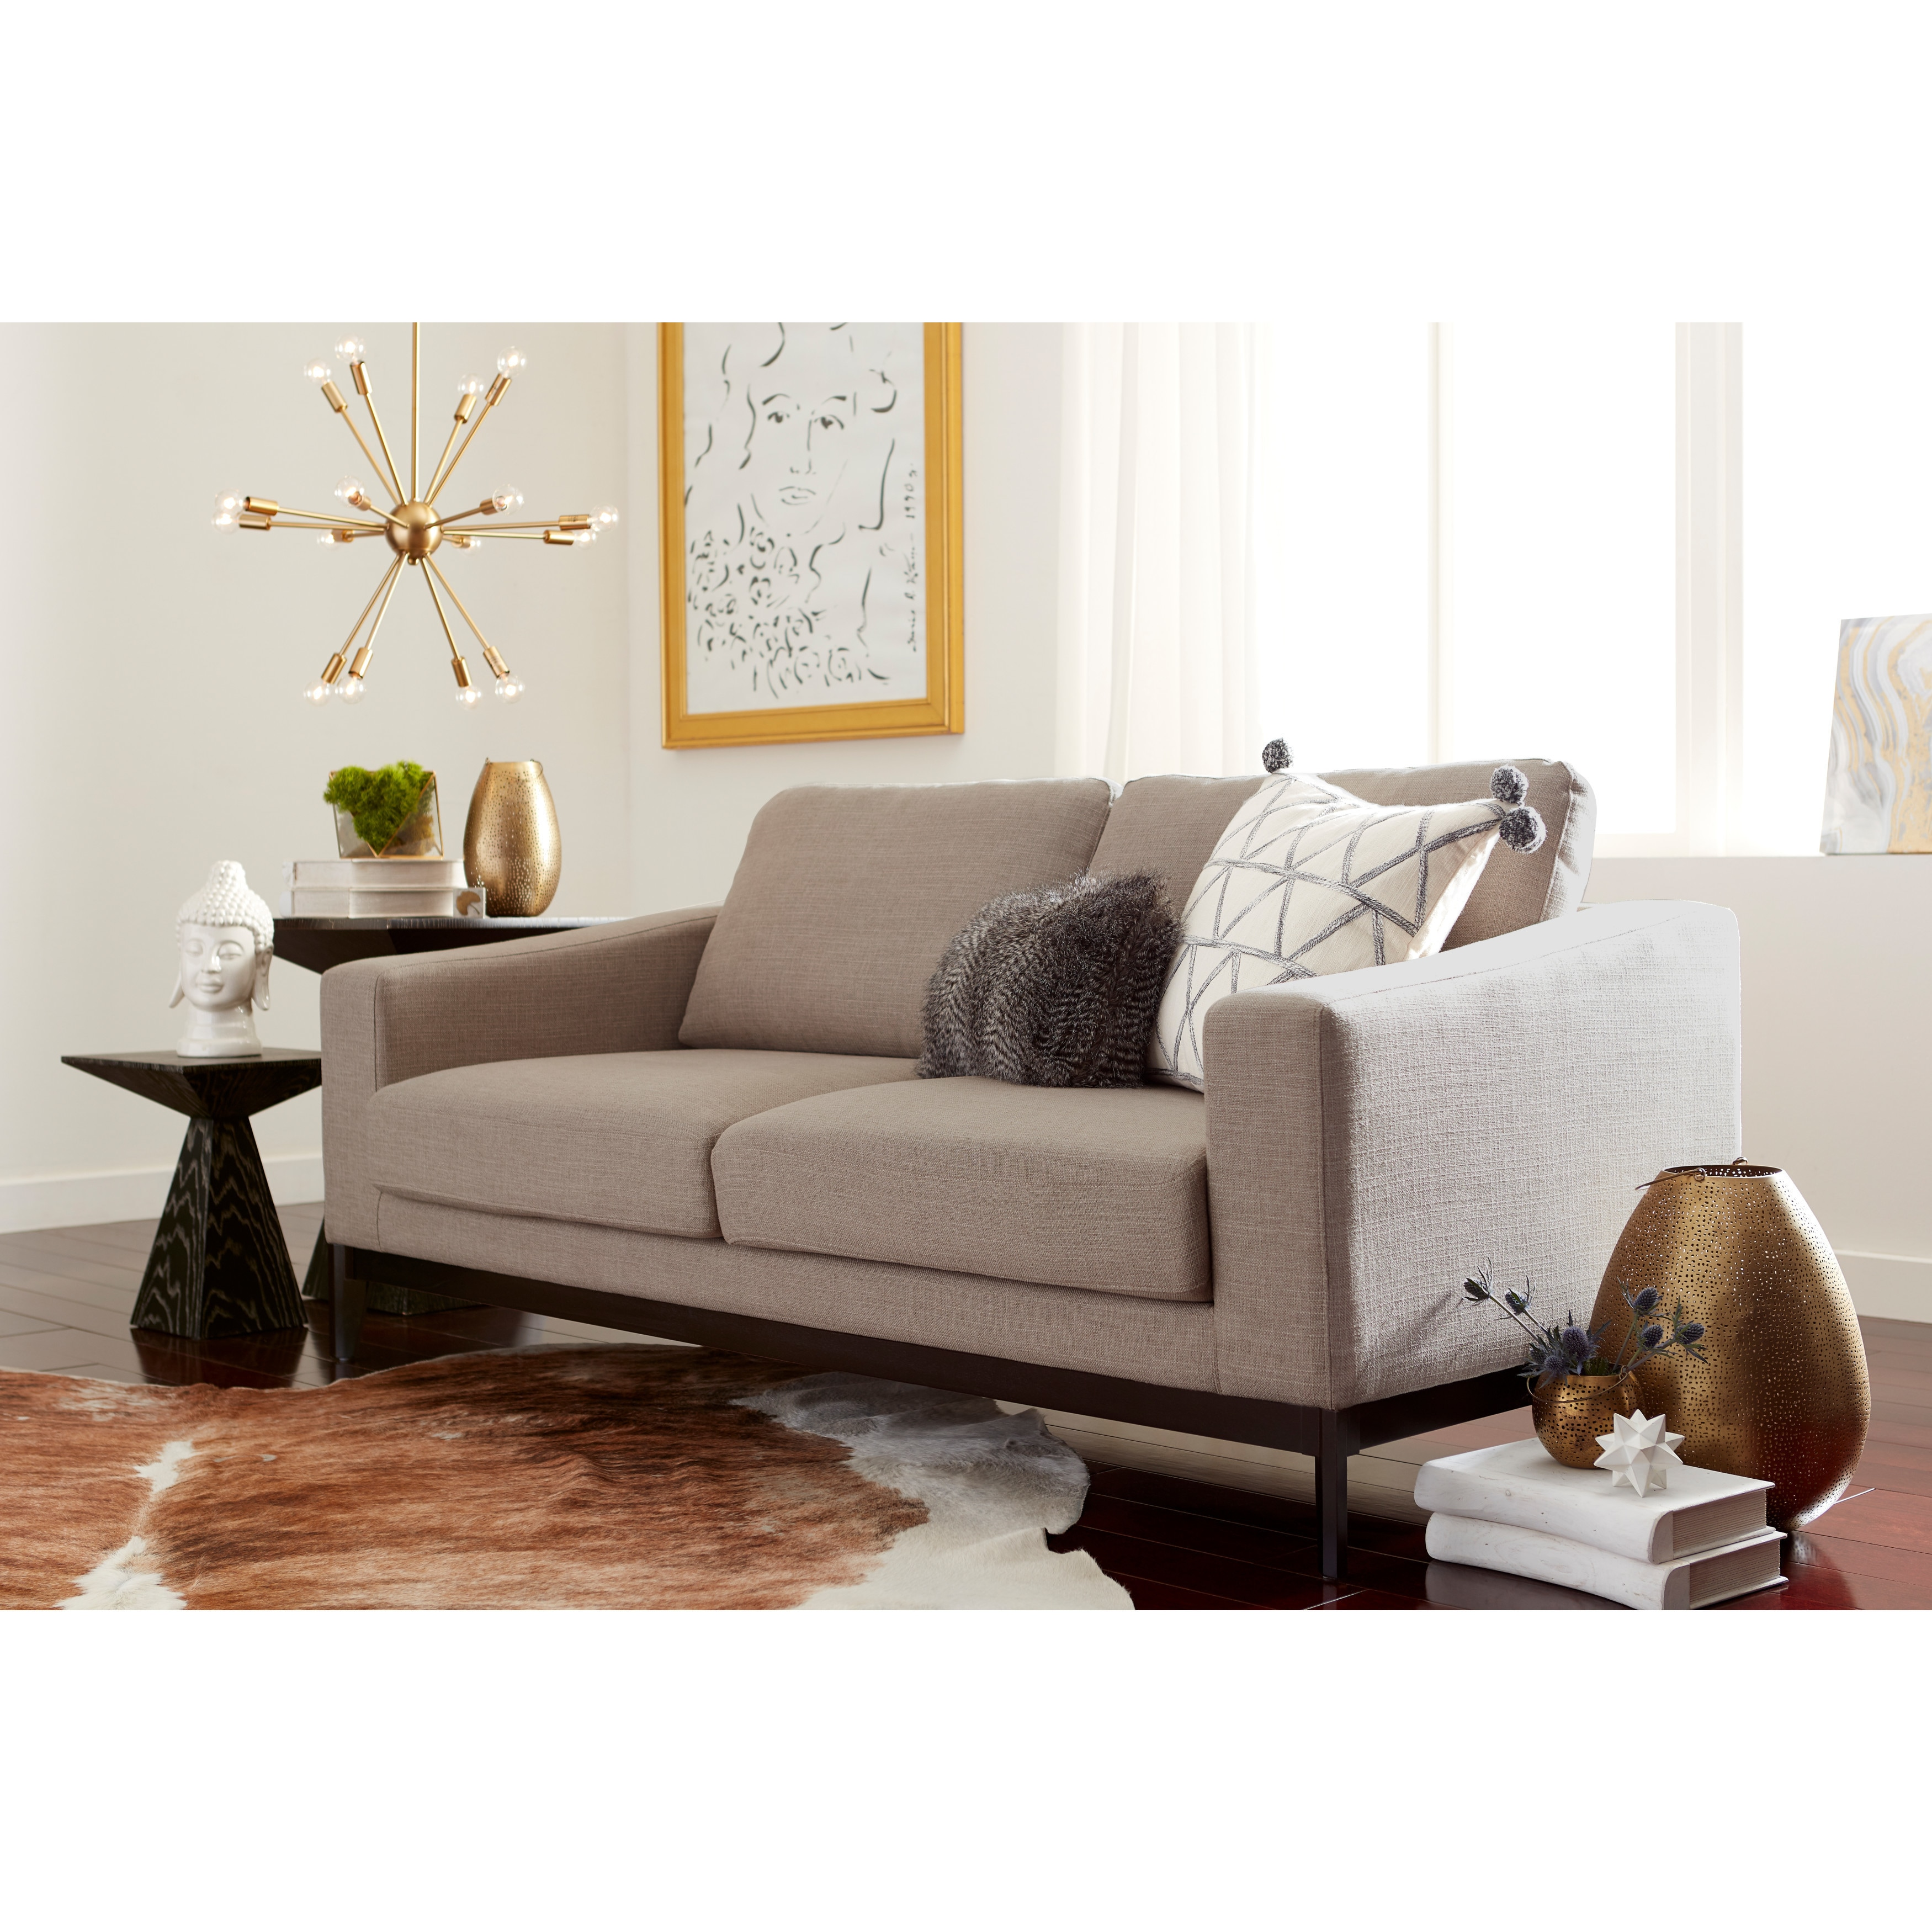 Elle Decor Olivia French Linen Sofa  Free Shipping Today